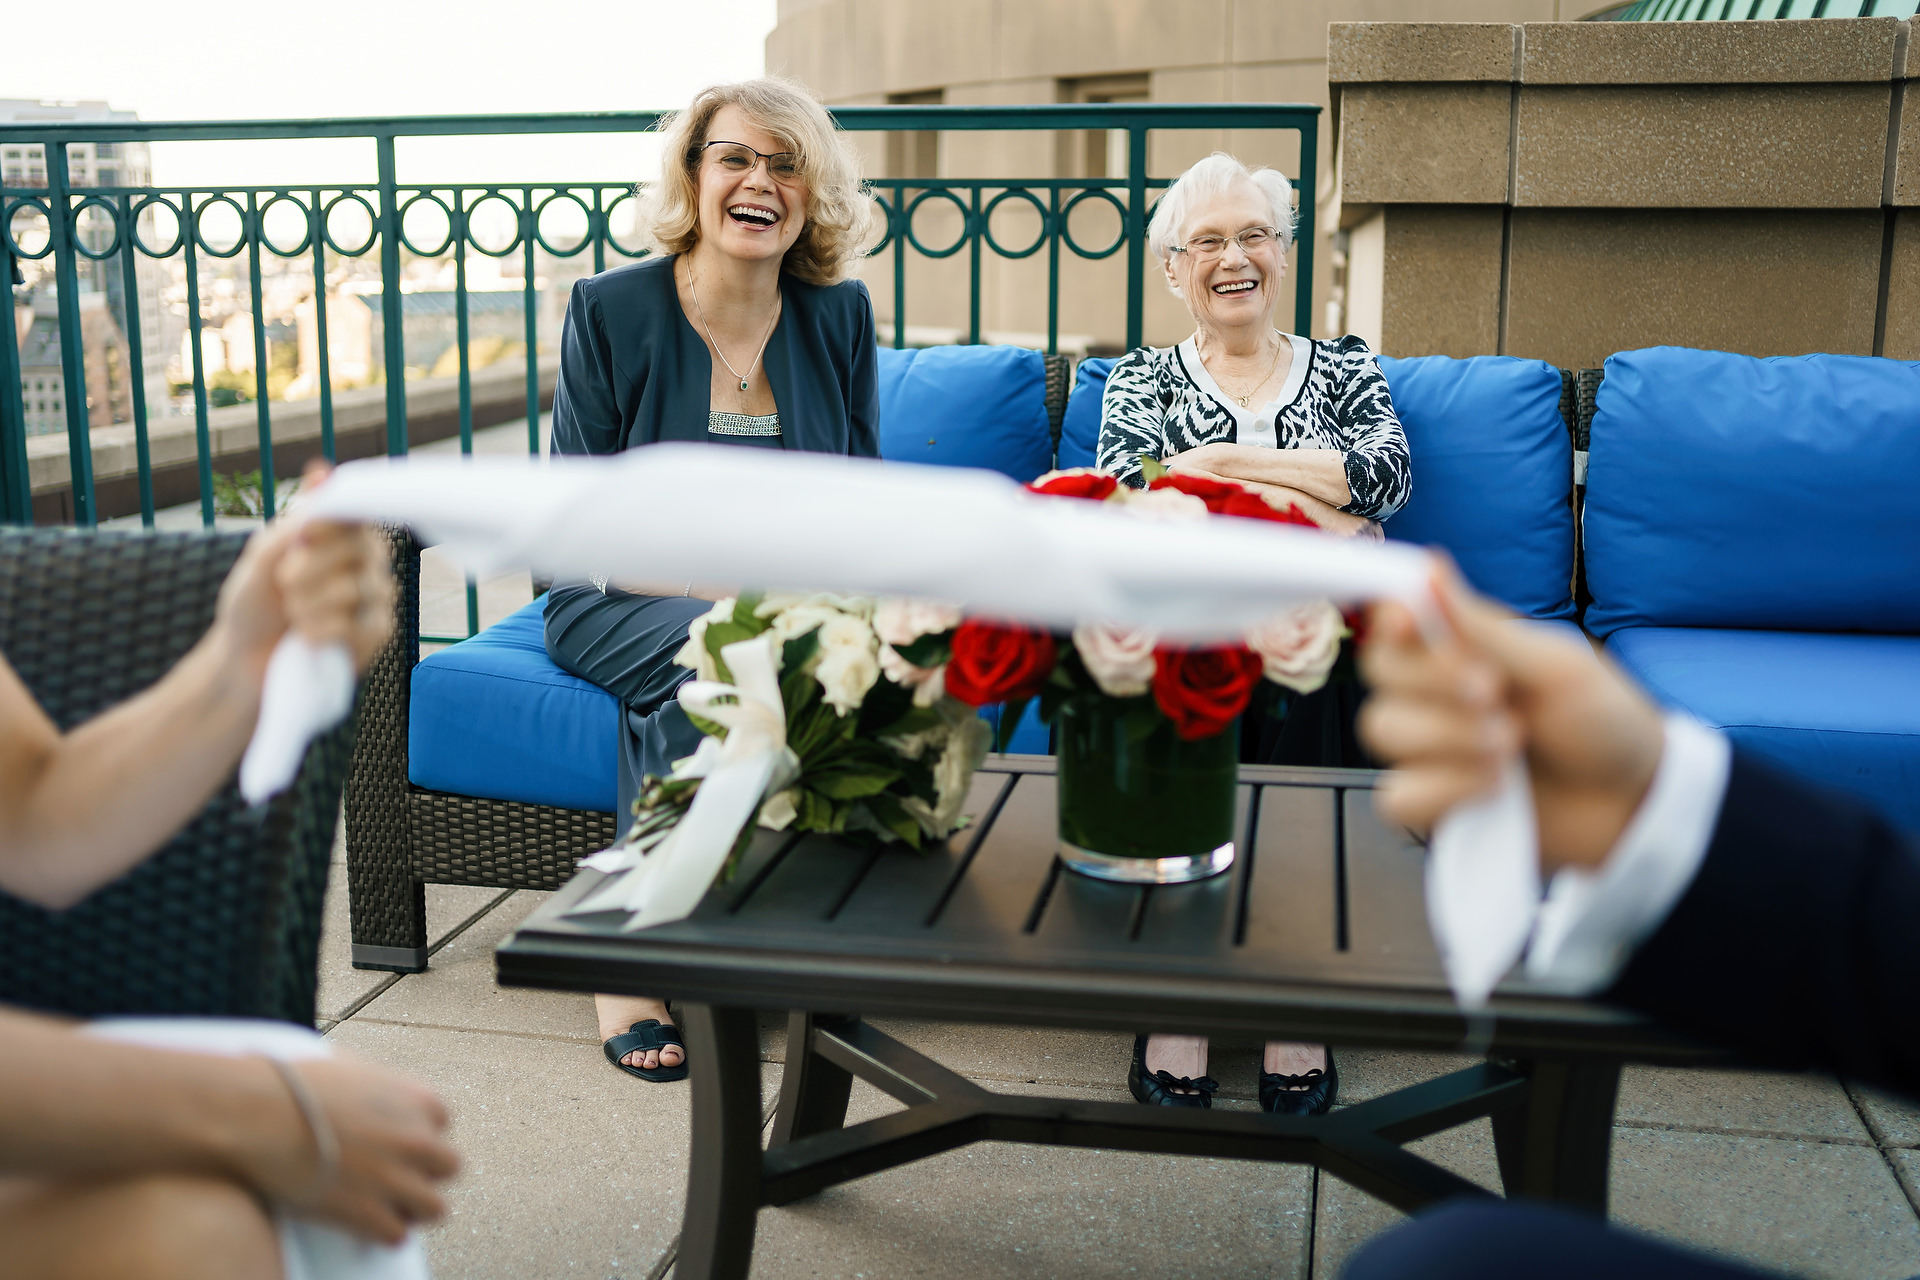 Boston, MA Harbor Hotel Wedding Photos | The bride's mother and grandmother look on